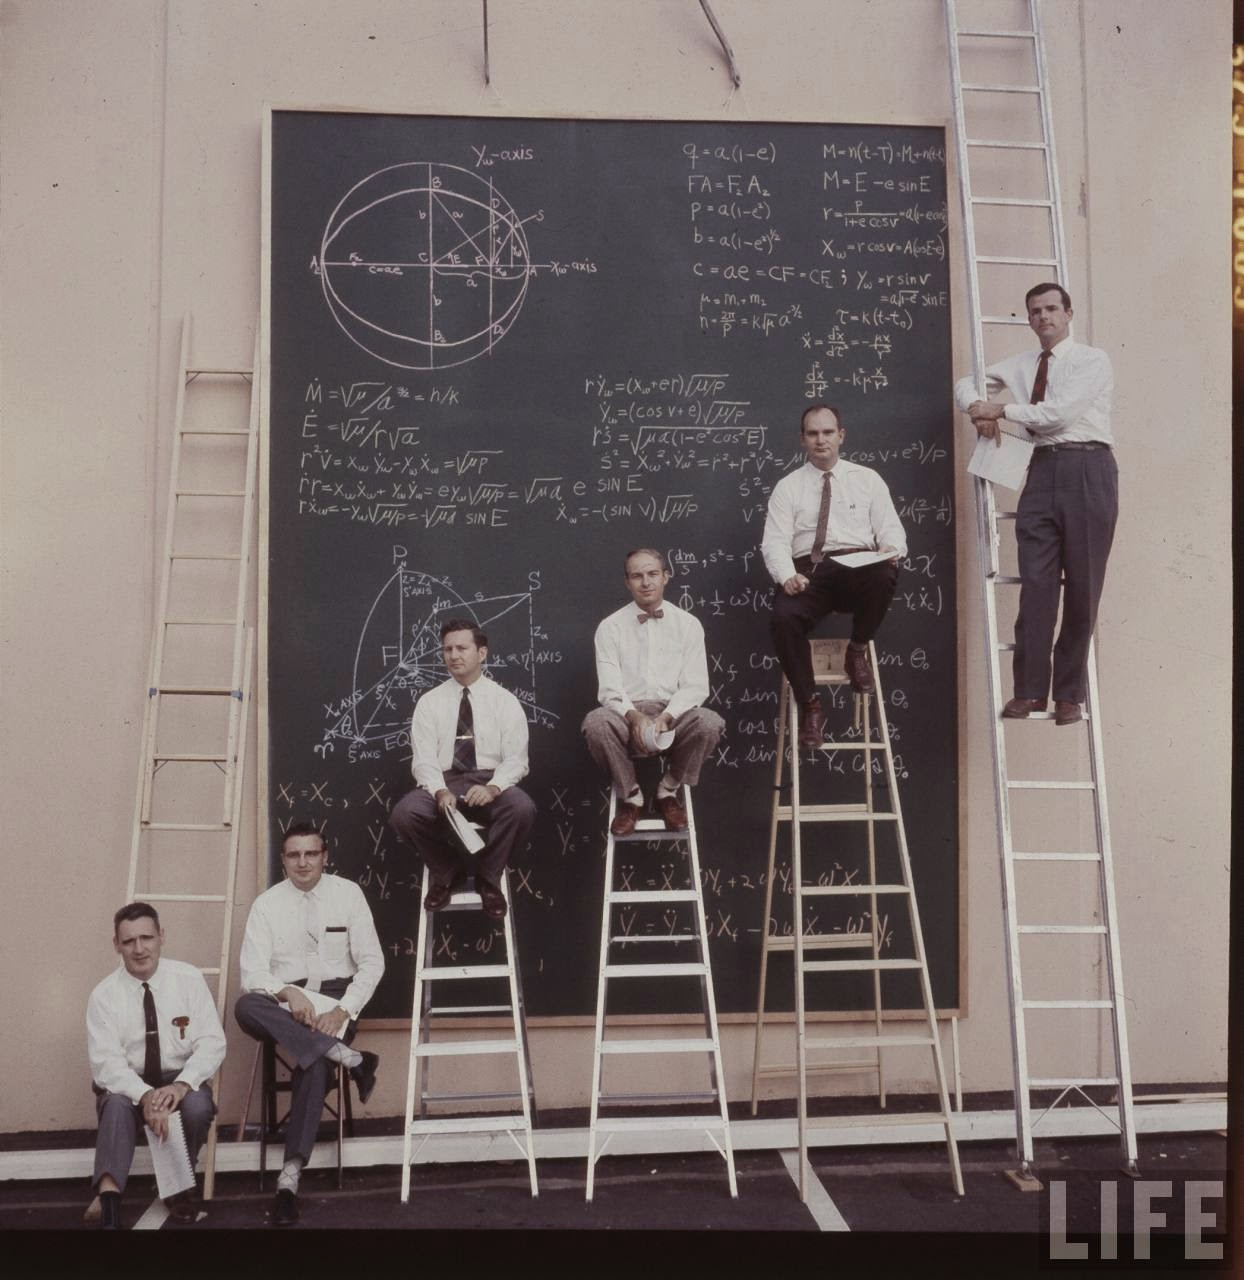 NASA scientists with their board of calculations 1961